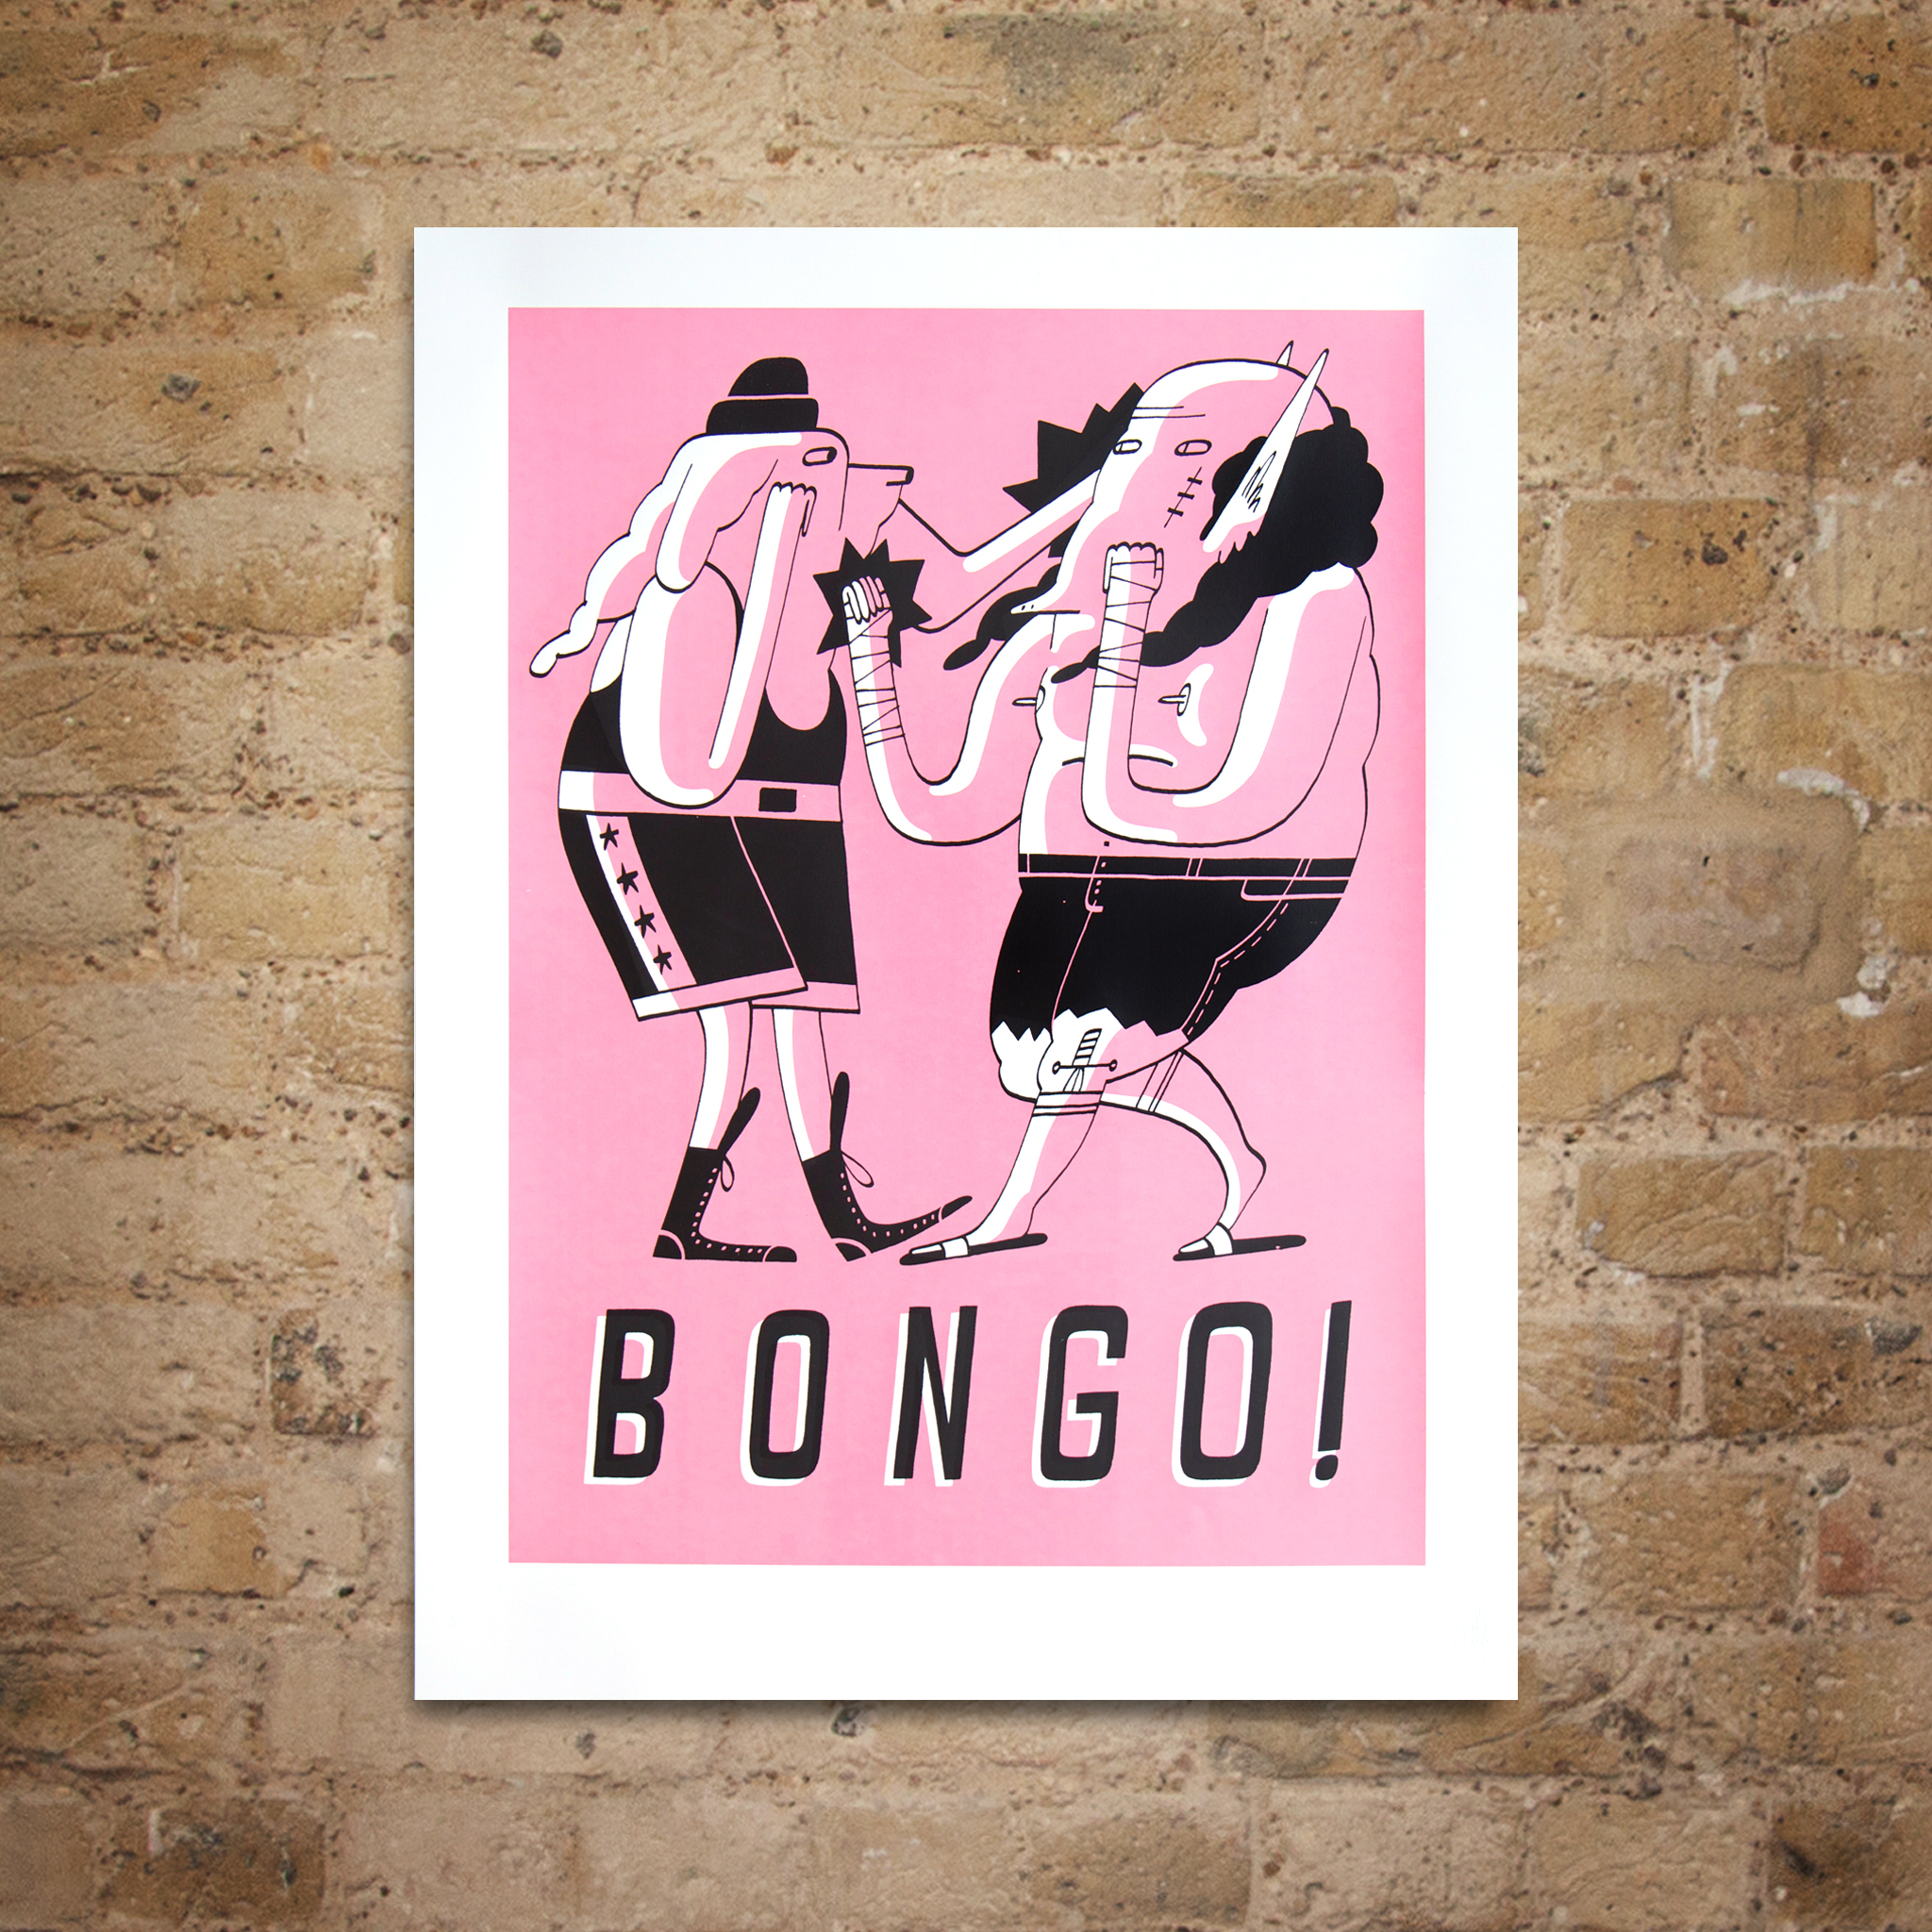 Bongo! print by Matt the Horse